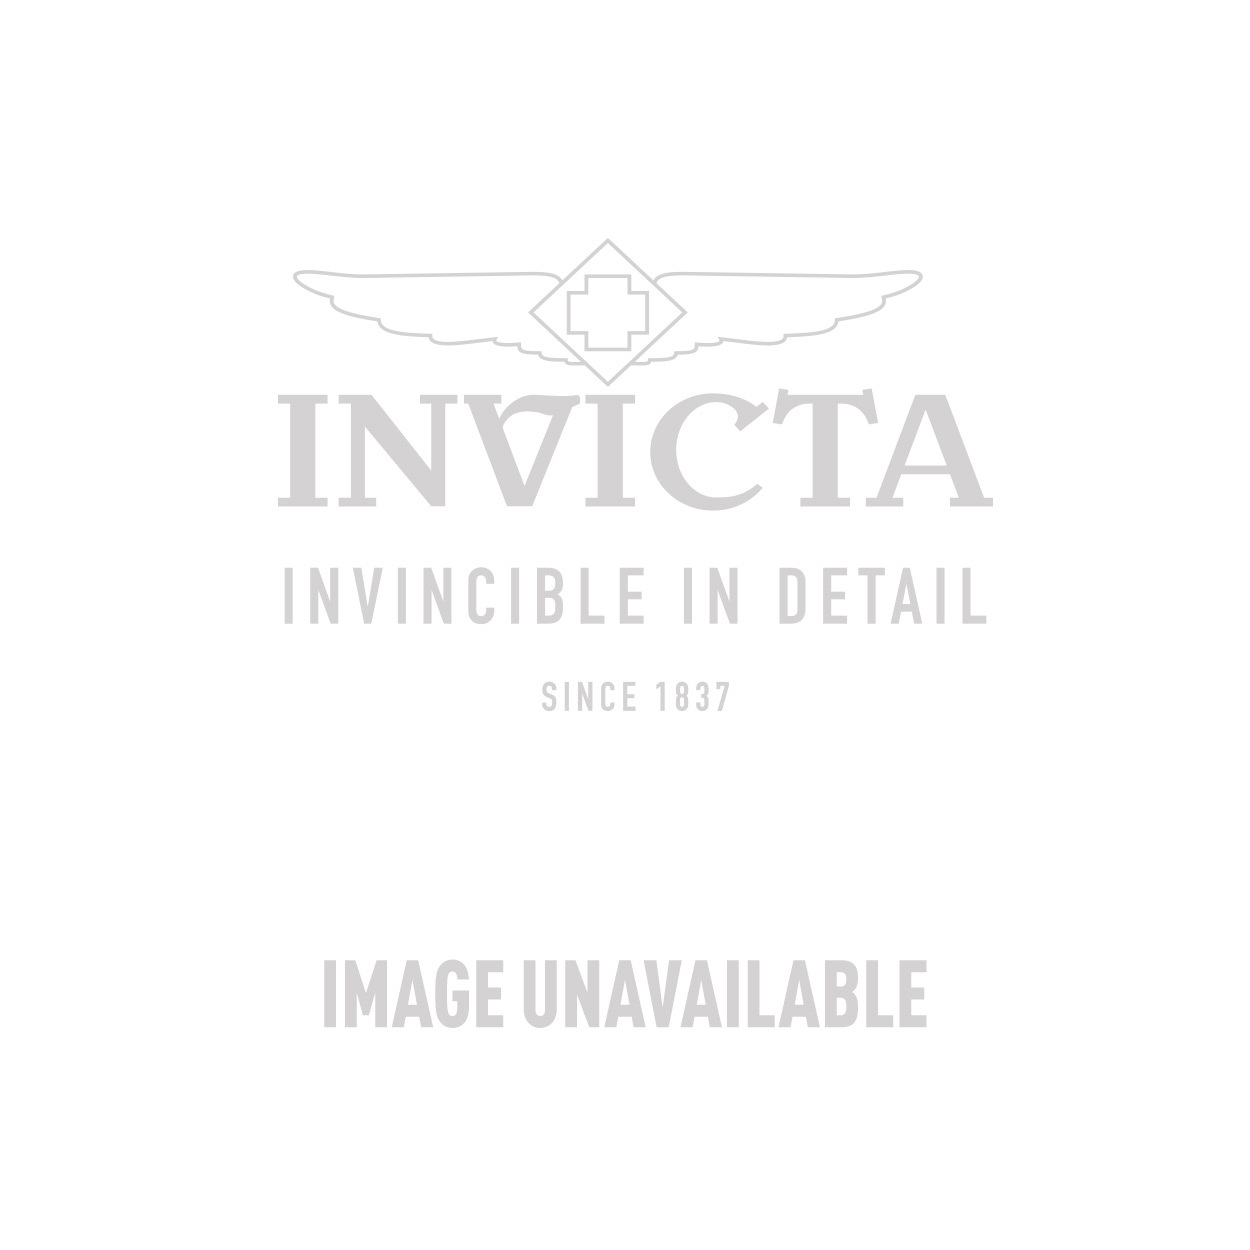 Invicta Pro Diver Swiss Movement Quartz Watch - Stainless Steel case with Black tone Polyurethane band - Model 12560